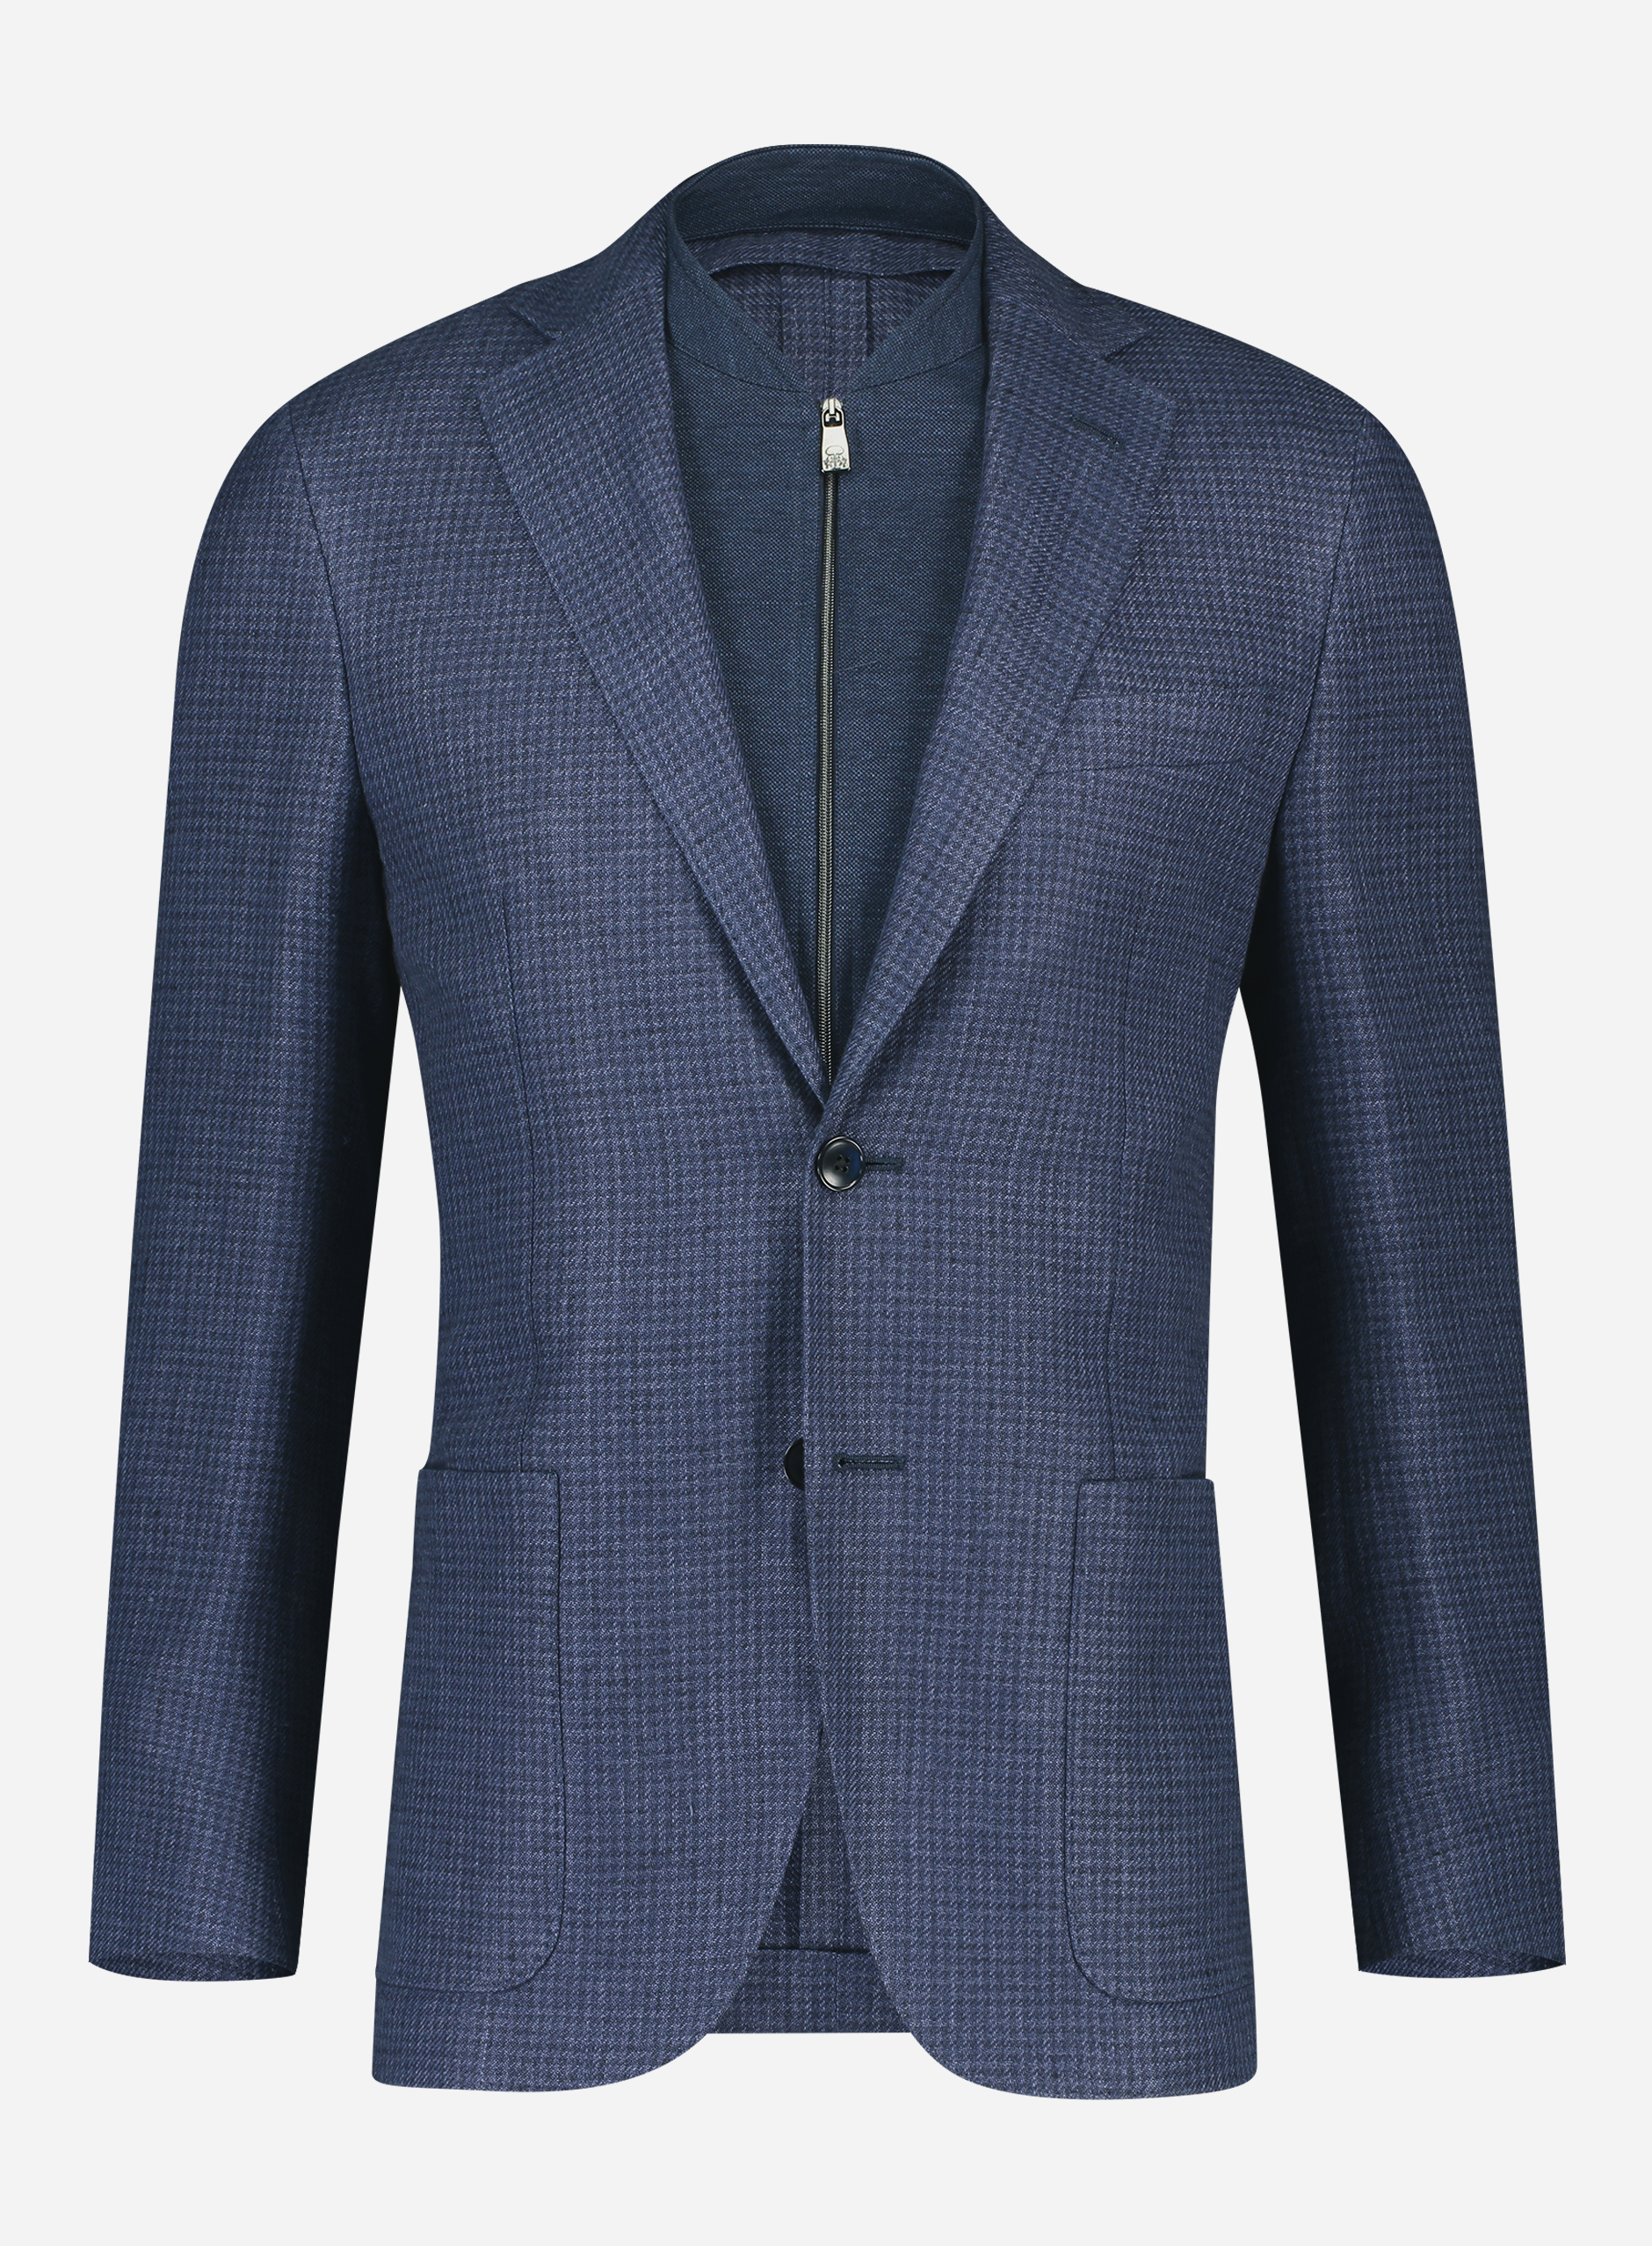 Corneliani Regular-fit ID jasje in linnen-wol blend Blauw